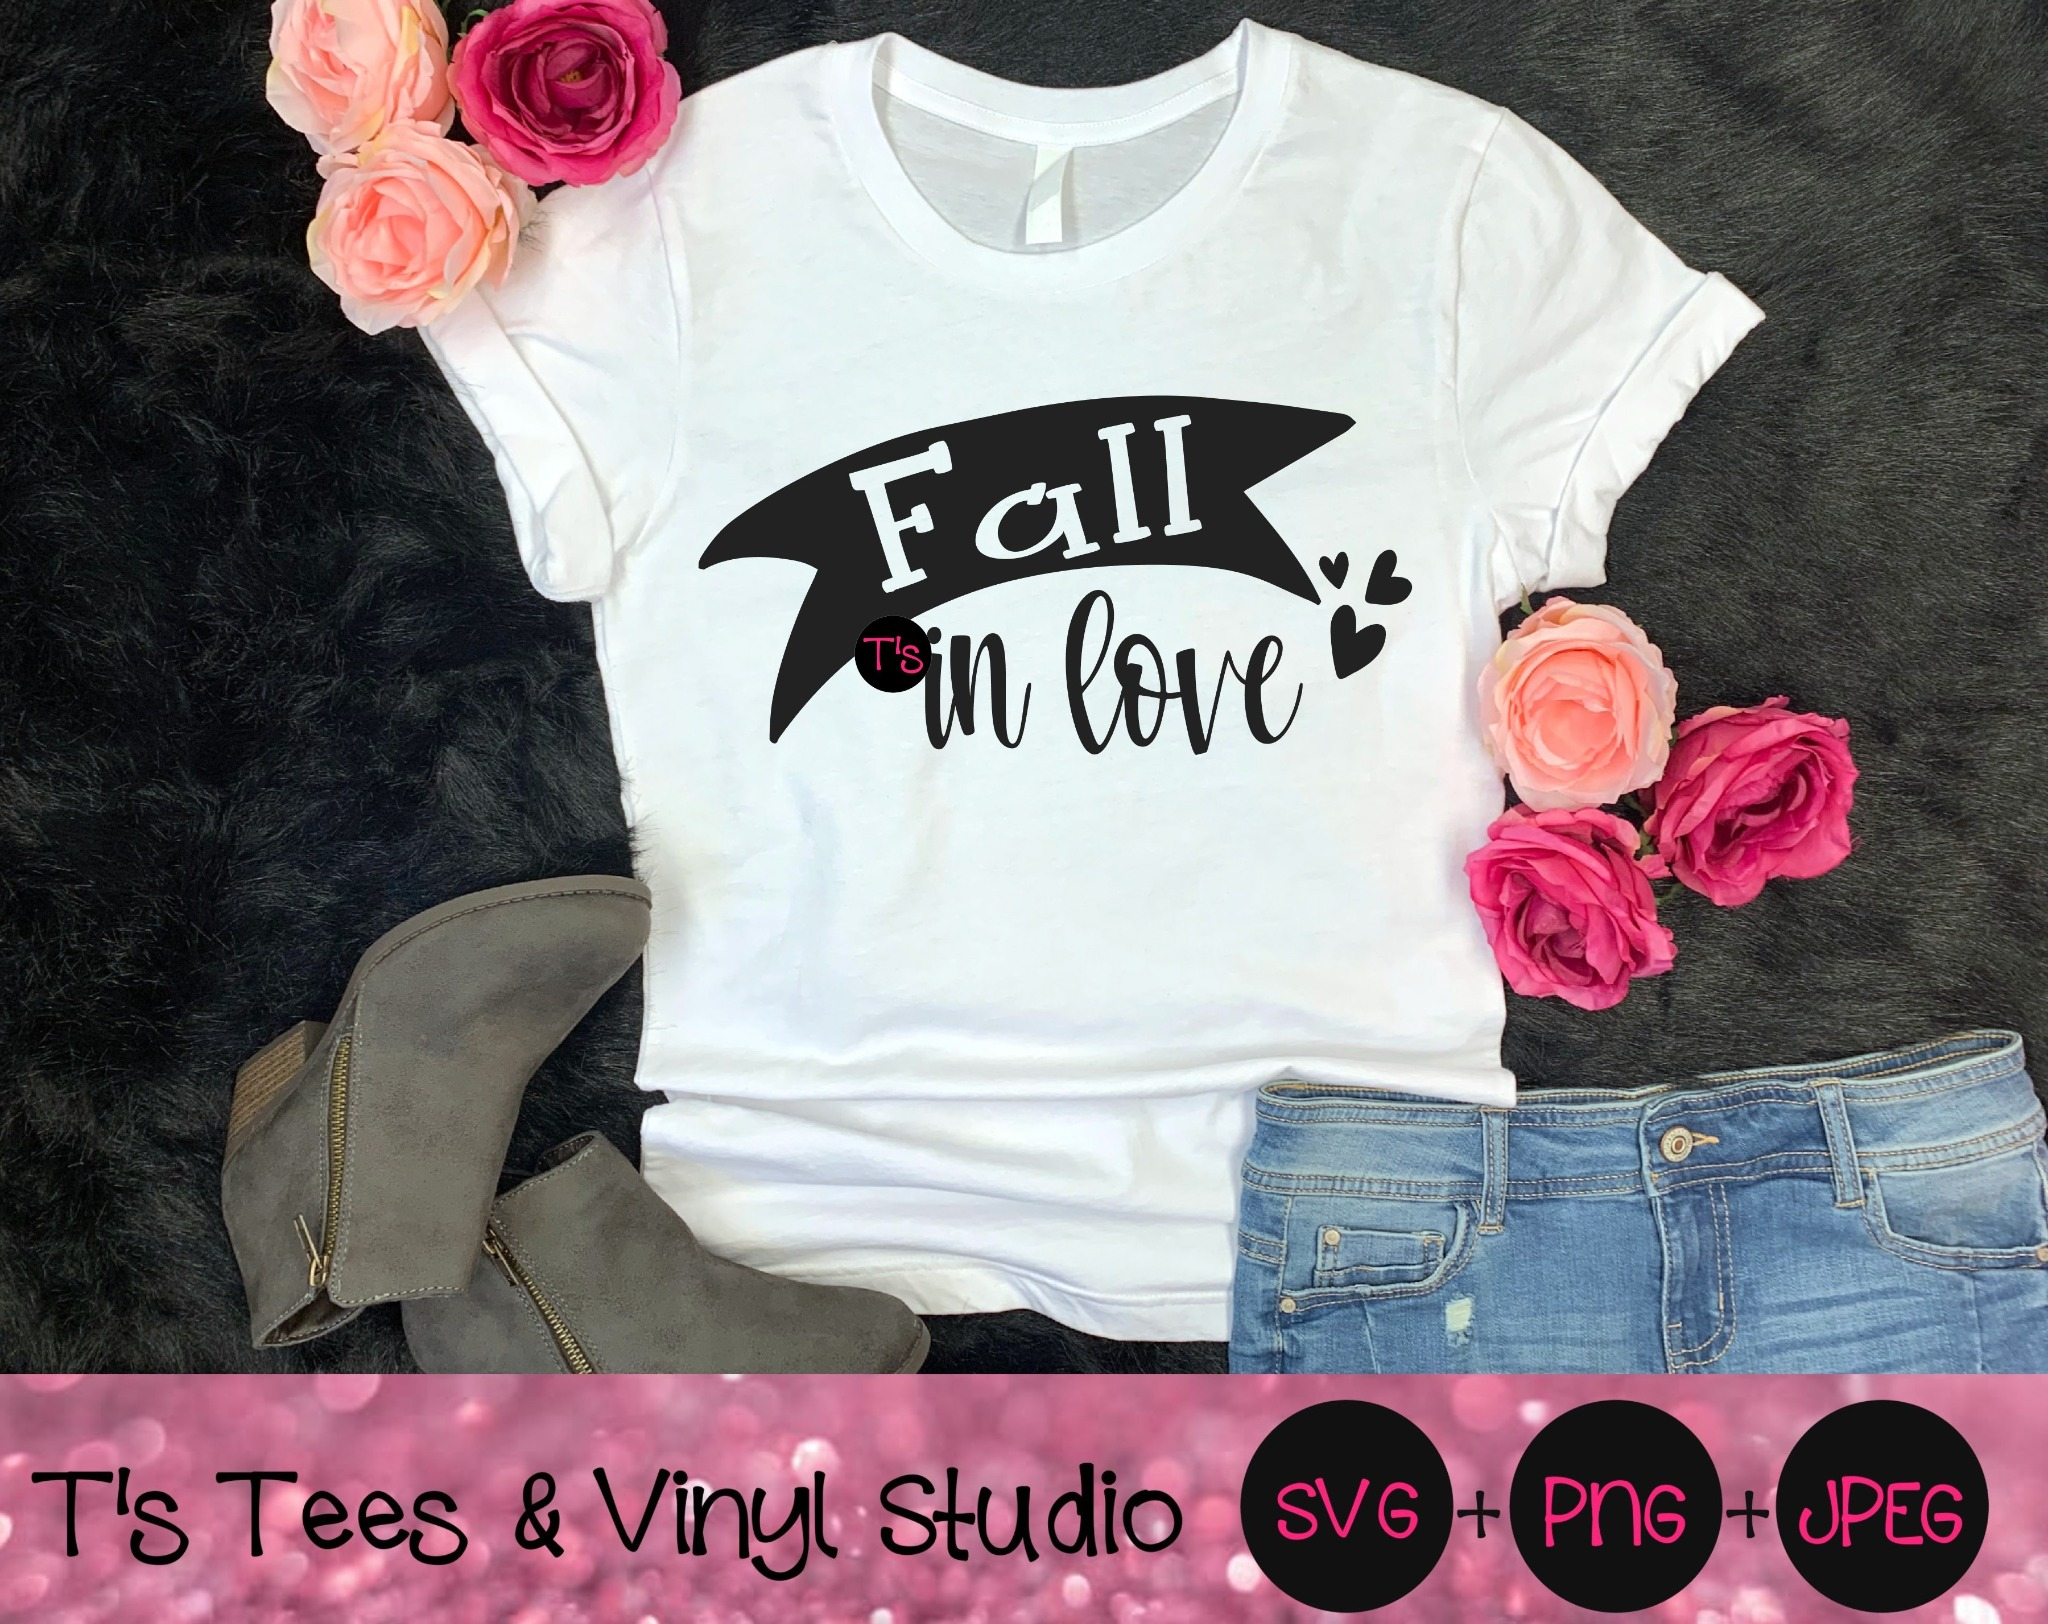 Fall In Love Svg, Lovers Svg, Autumn Svg, Season Svg, Hearts Svg, Fall In Love Png, Lovers Png, Autu